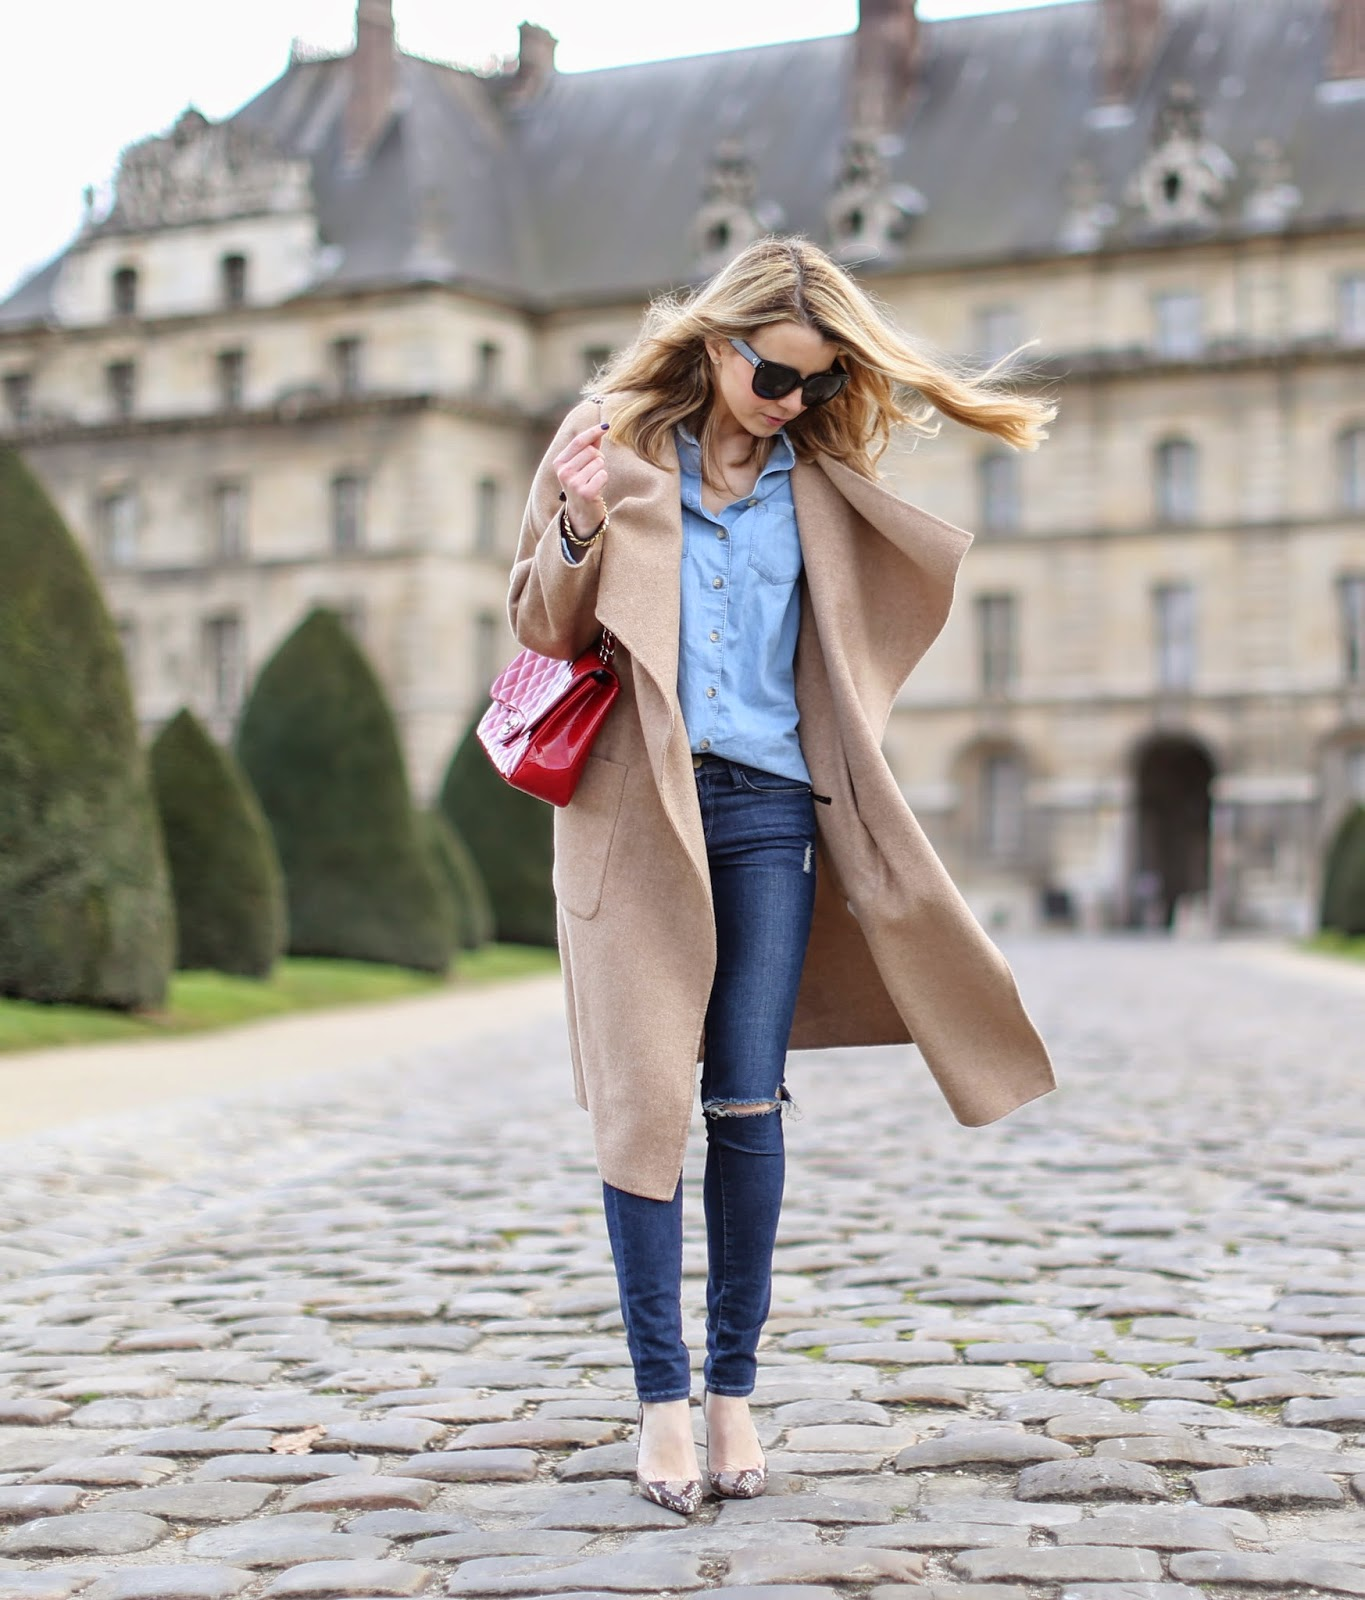 4aab68b9a9eb Caroline Louis is wearing a camel coat and shoes from Zara